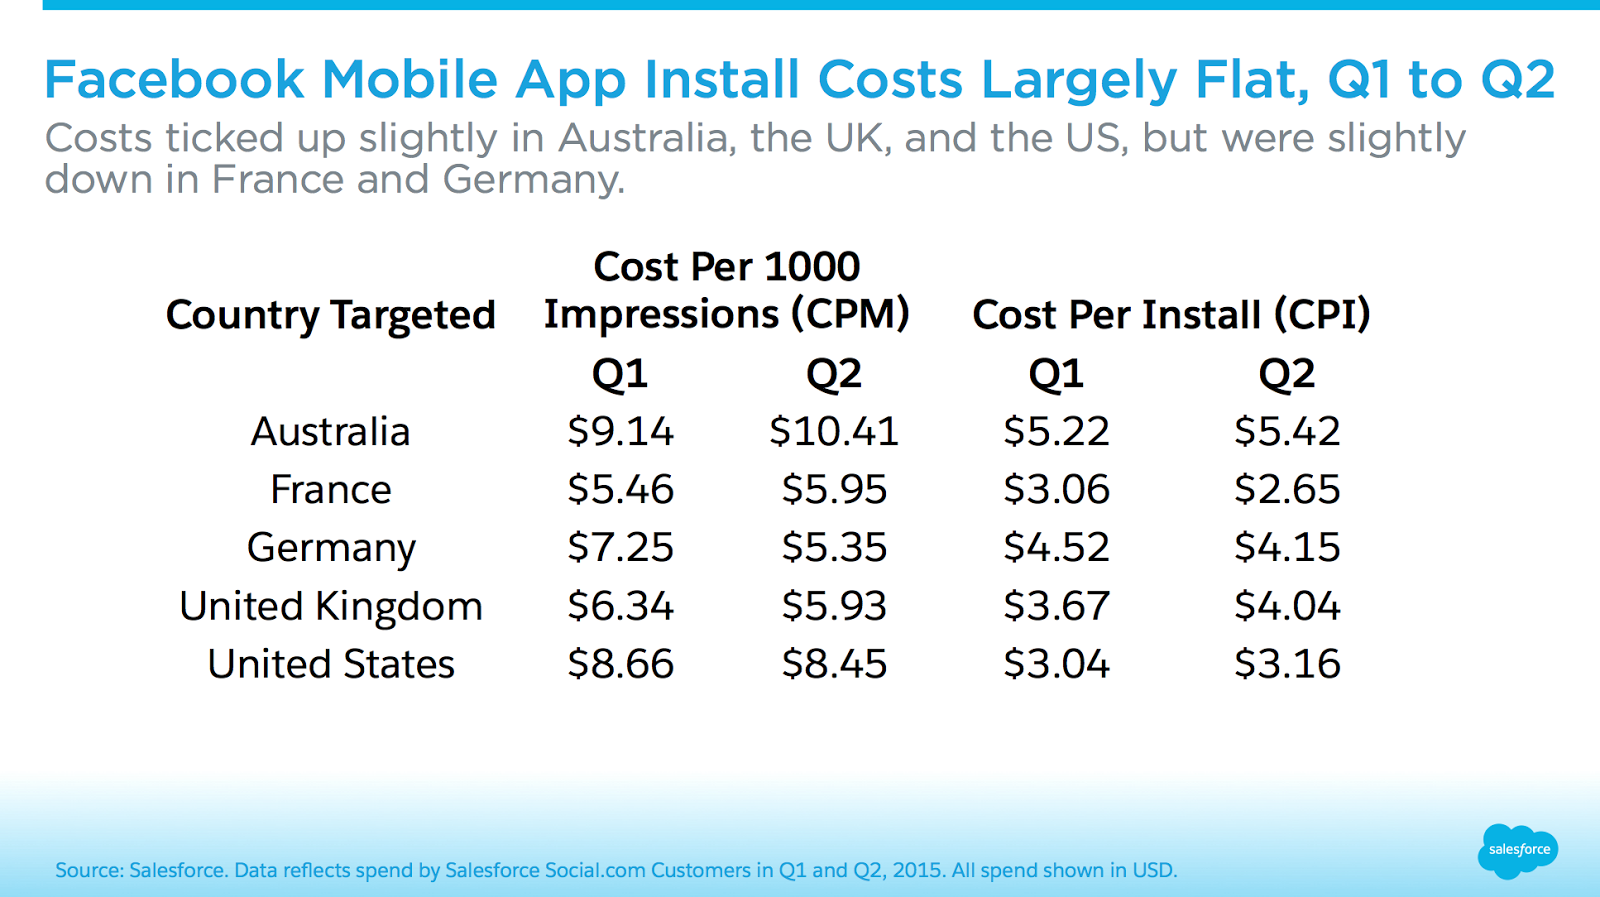 Facebook Mobile App Installs Cost More on Android in Five Countries